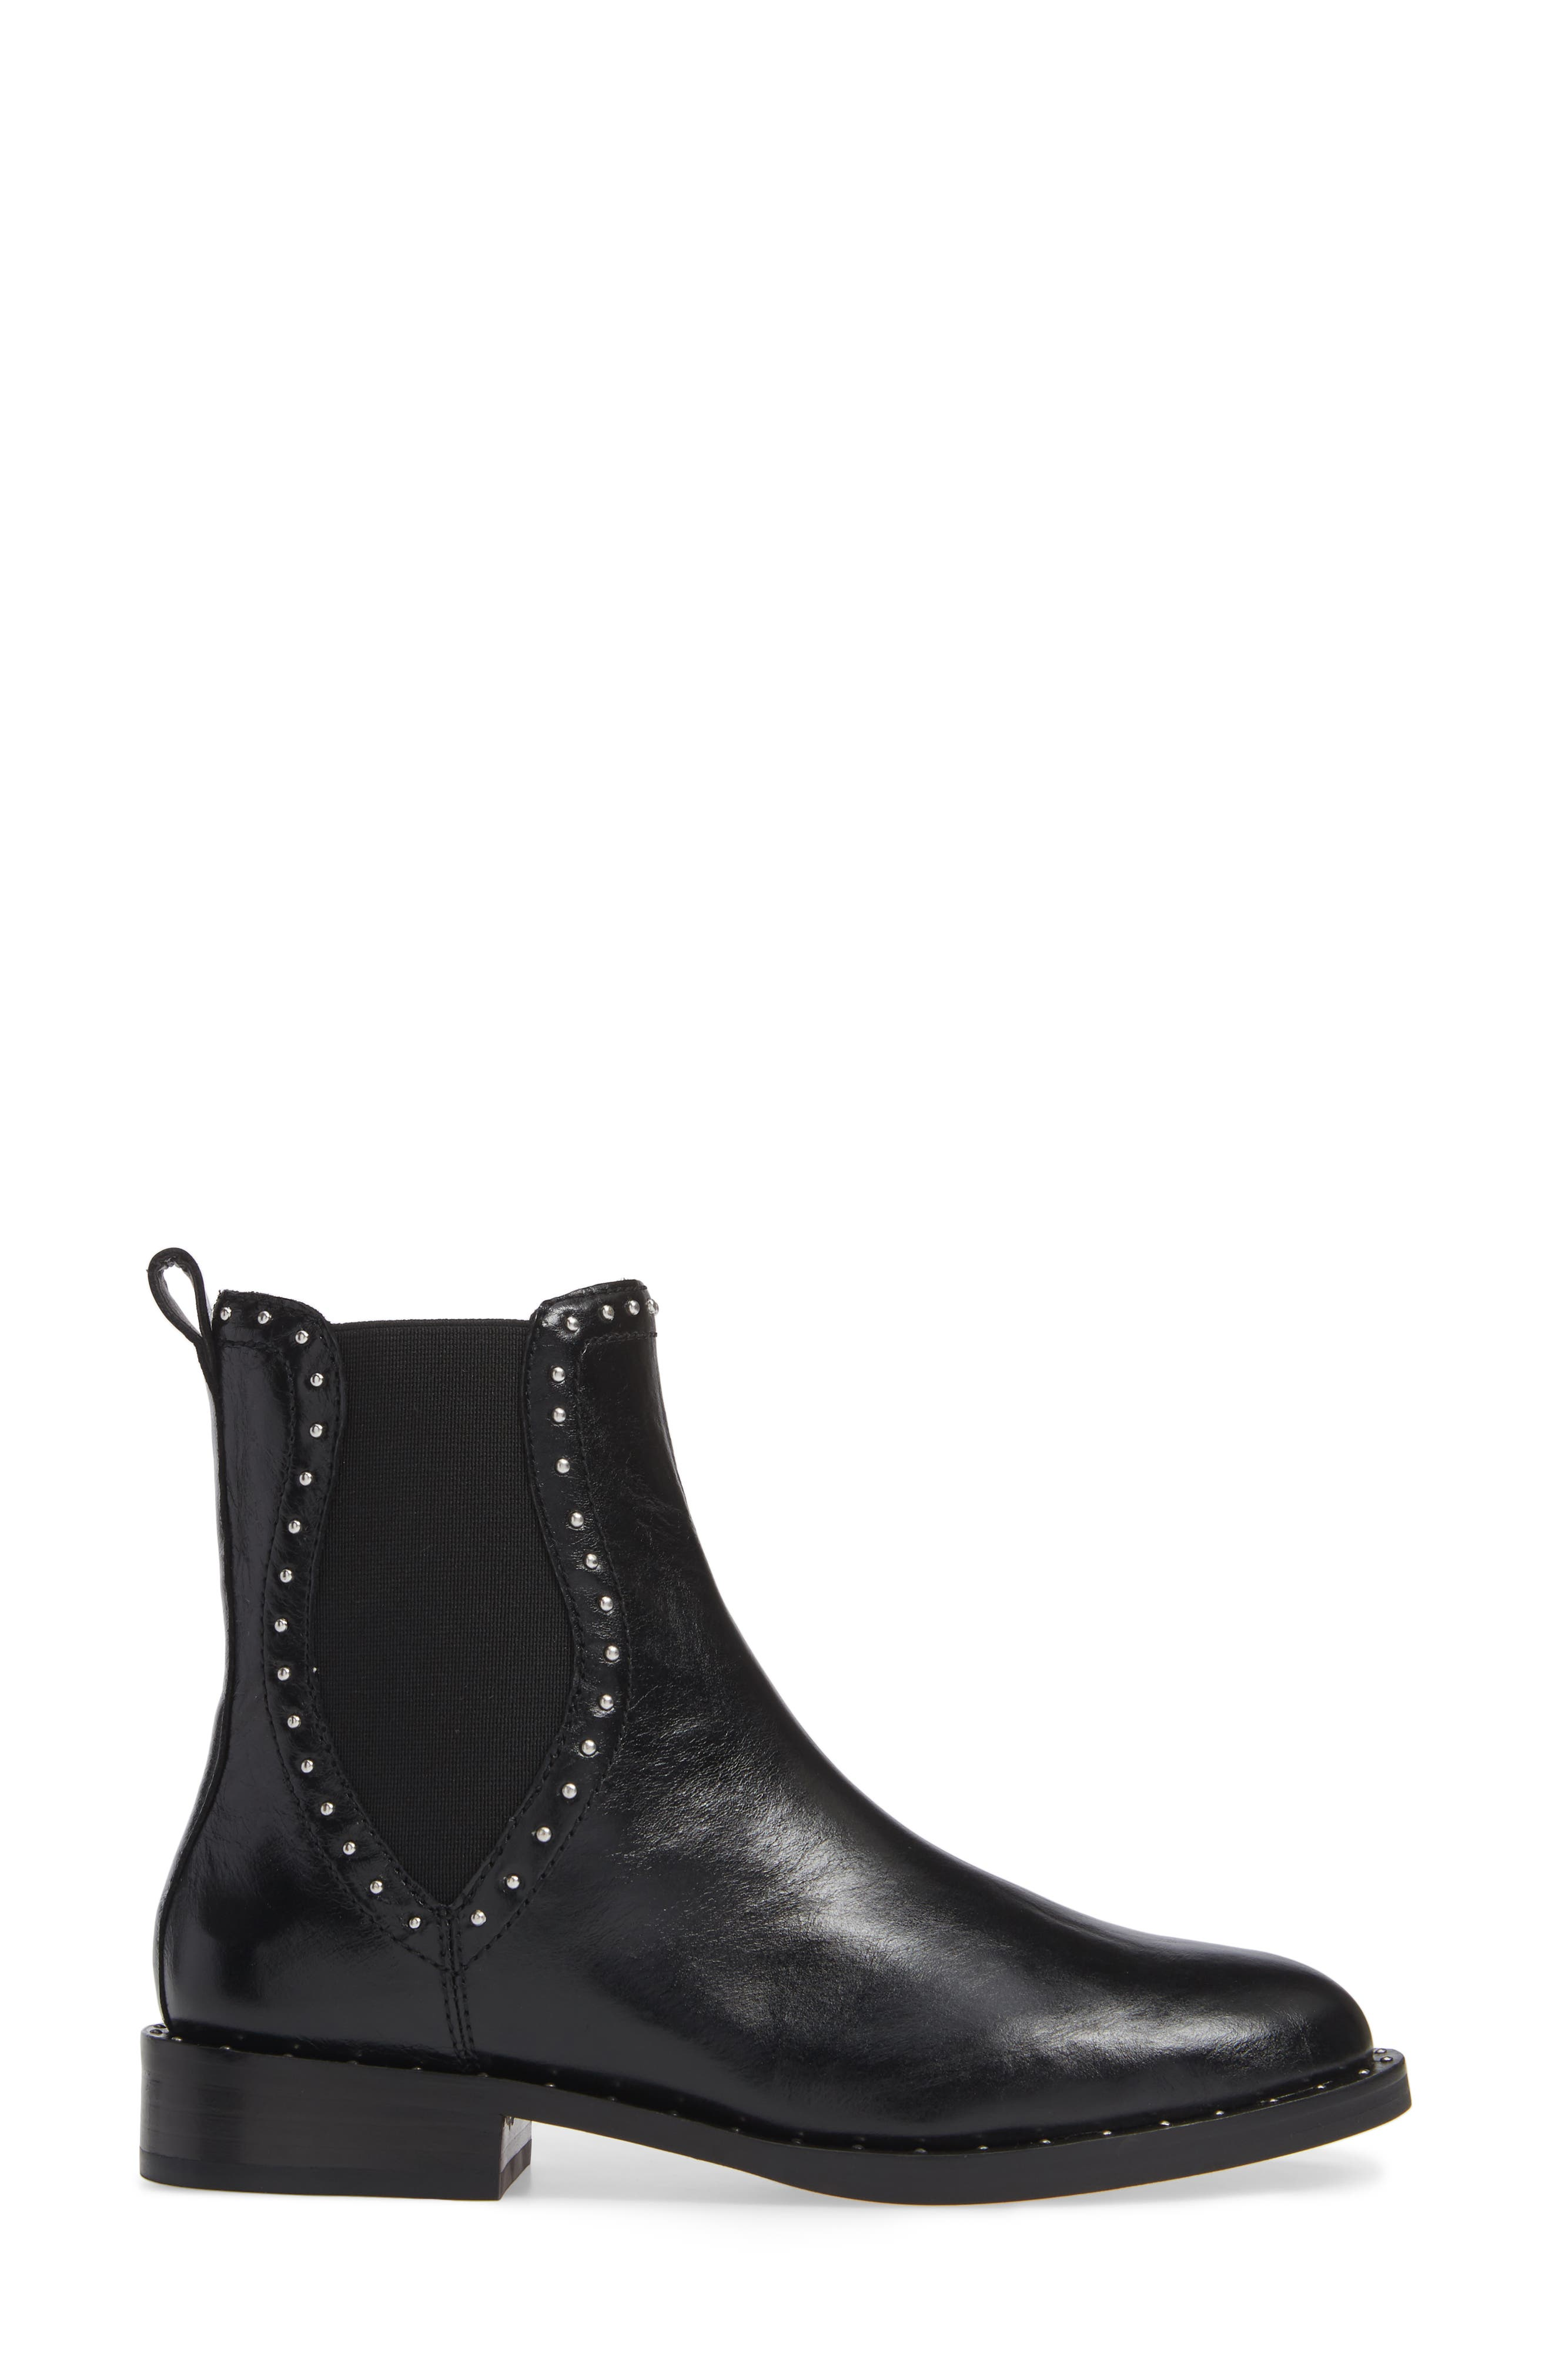 REBECCA MINKOFF, Sabeen Chelsea Bootie, Alternate thumbnail 3, color, BLACK LEATHER